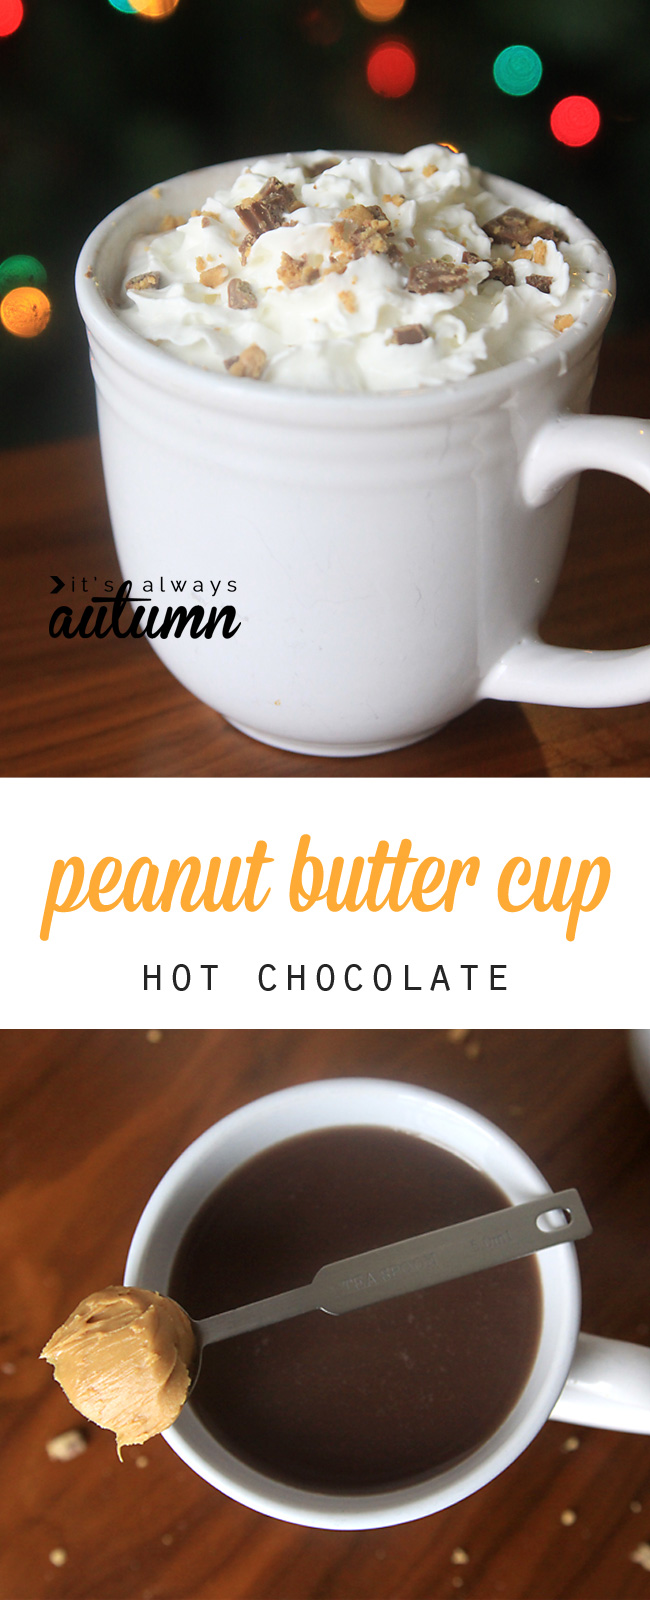 What is an easy hot chocolate recipe?